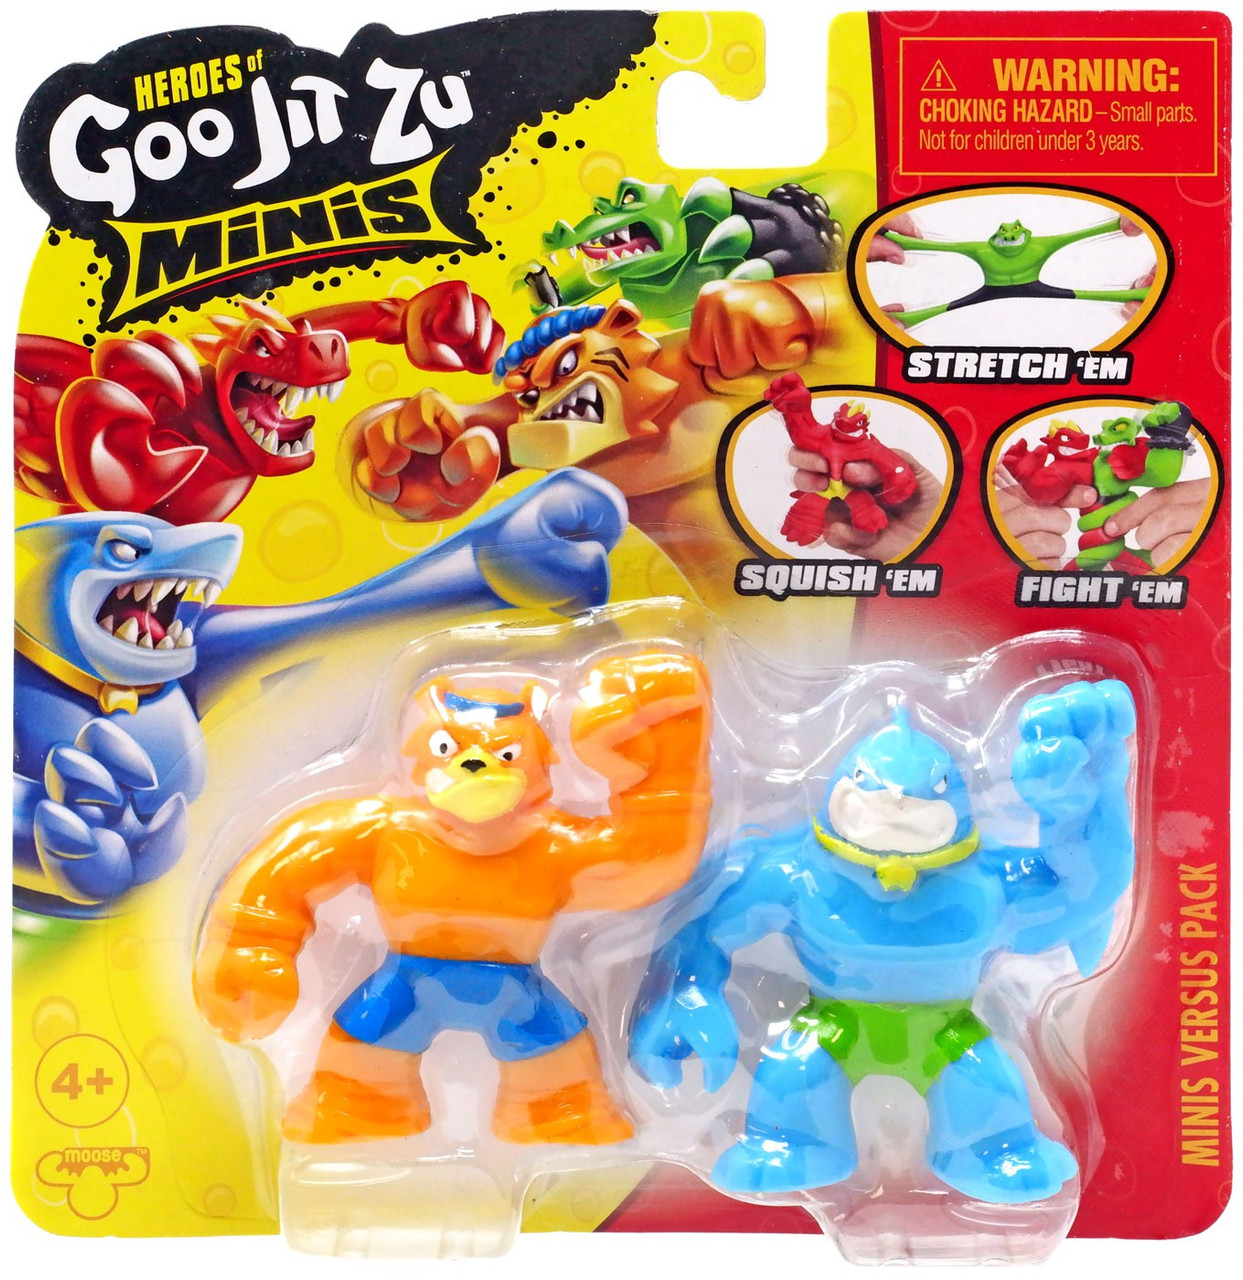 Brand New Heroes of Goo Jit Zu Tygor Action Figure by Moose Toys